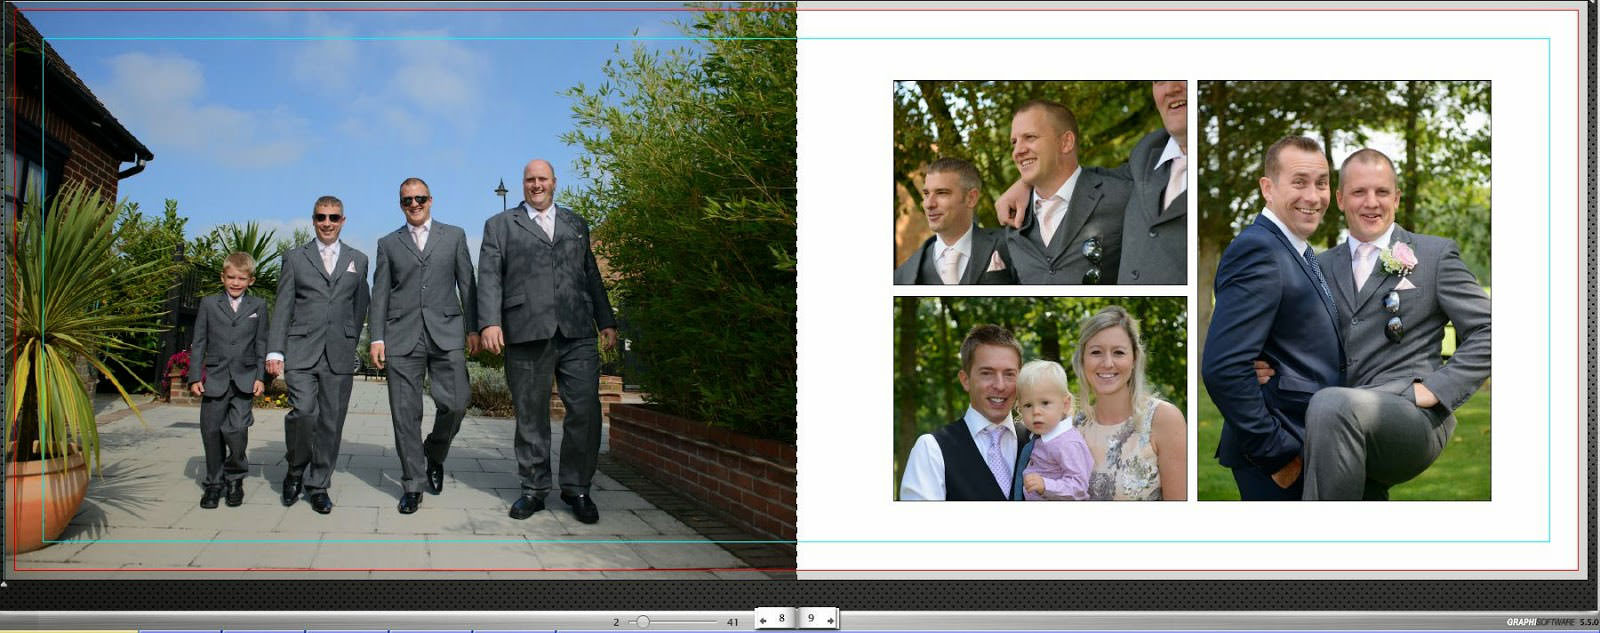 ali-gaudion-chichester-wedding-photographer-graphistudio-wedding-album-design-004